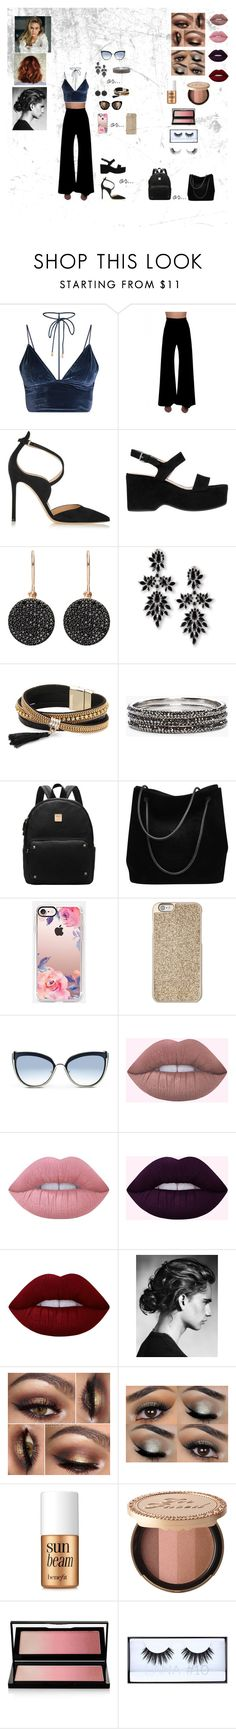 """""""Untitled #16"""" by meaghanashleyy on Polyvore featuring GCGme, Gianvito Rossi, Marc Jacobs, Astley Clarke, Fallon, Simons, Chico's, Gucci, Casetify and Michael Kors"""